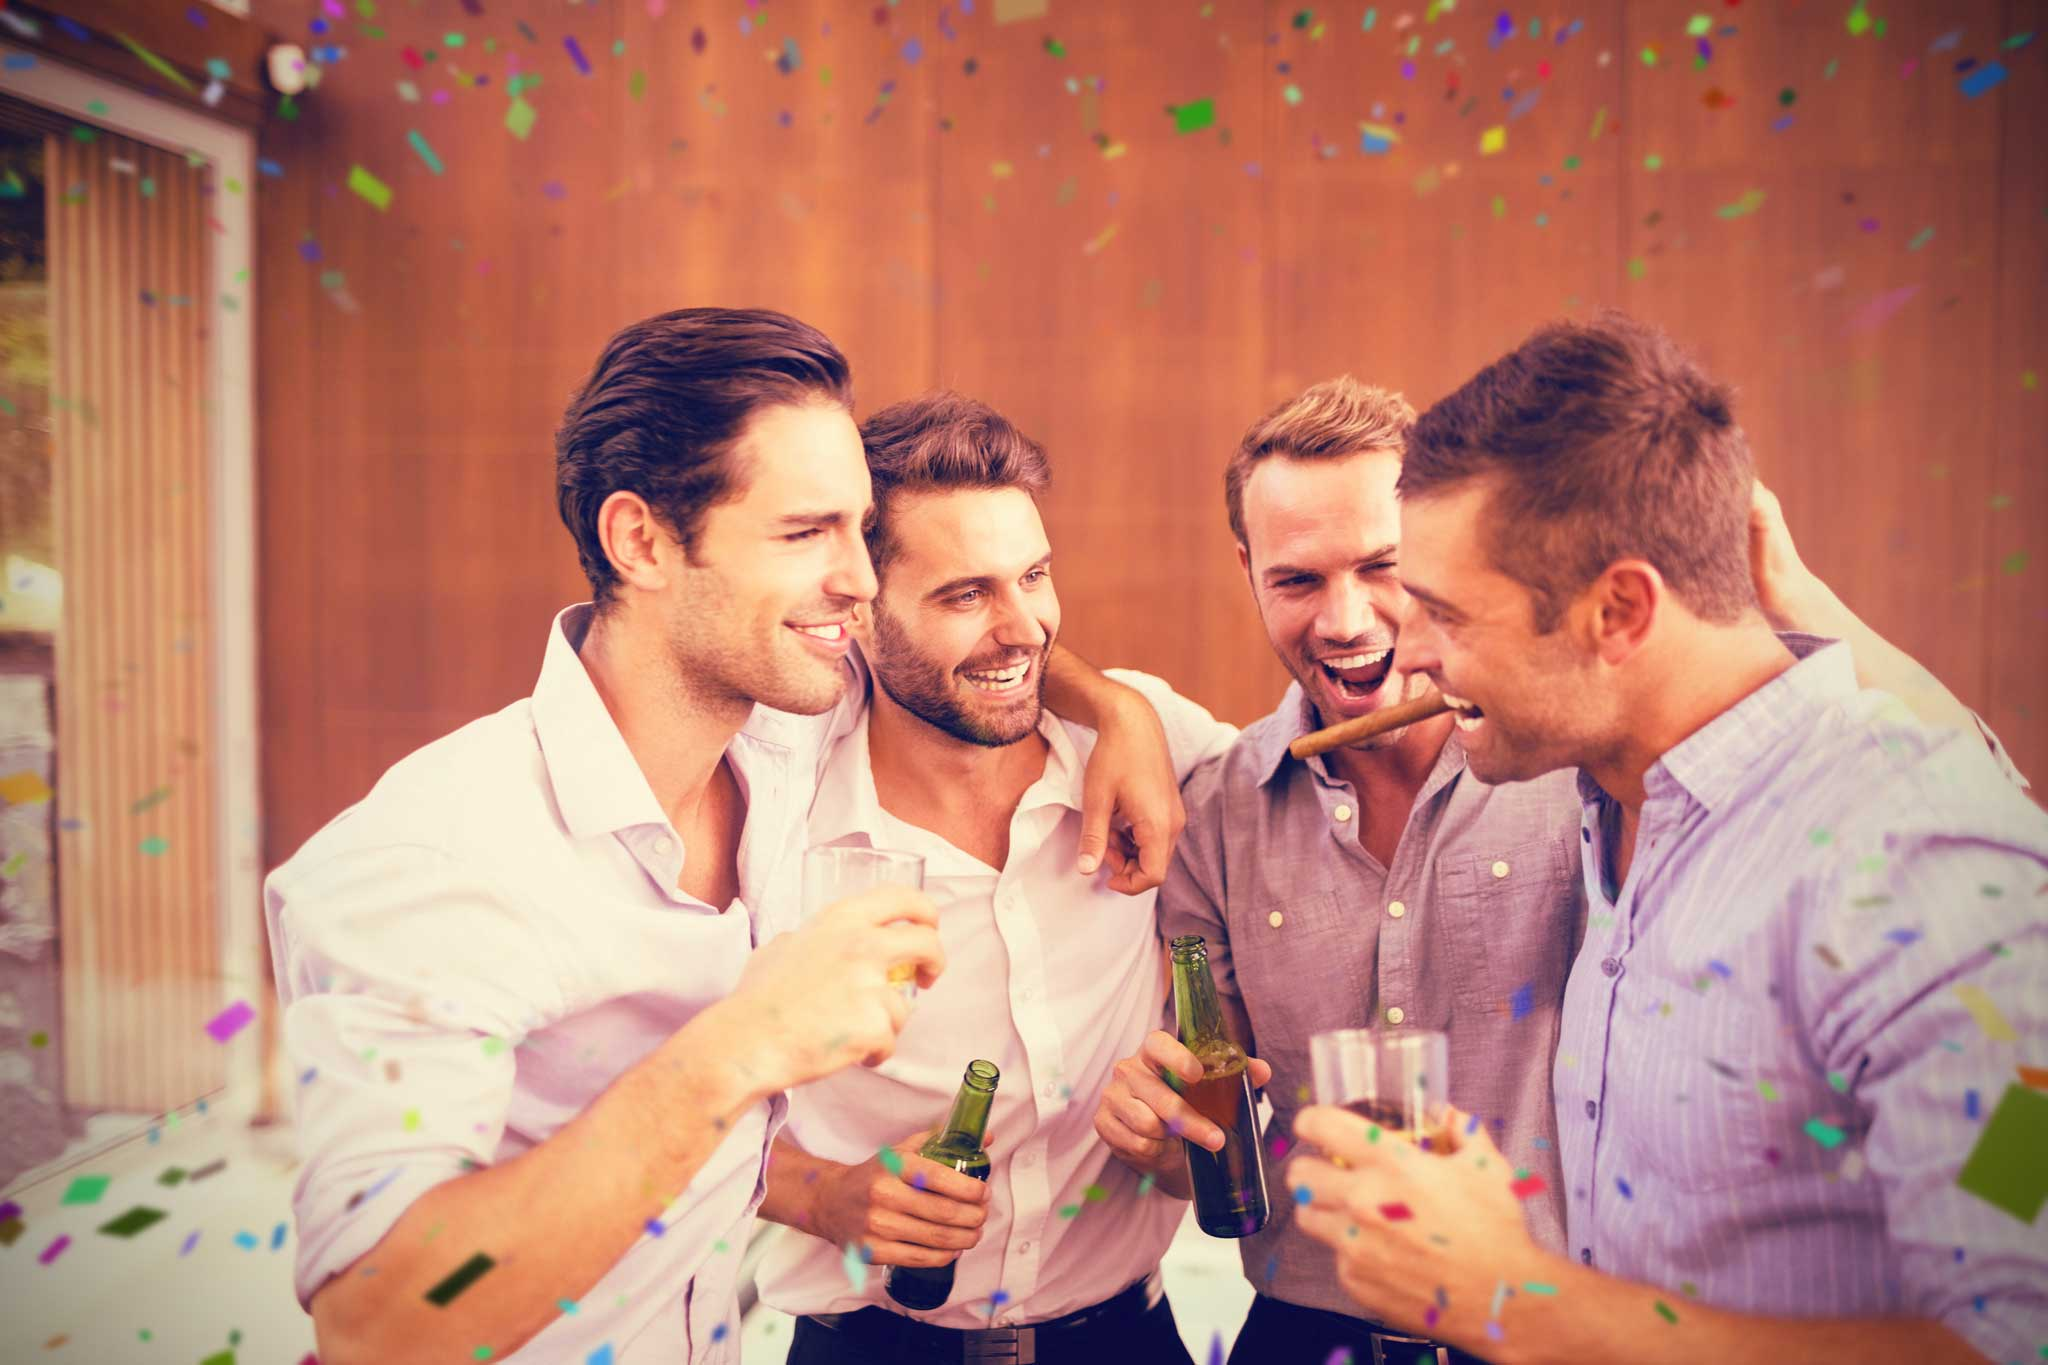 Bachelor Party Organisers in Athens Greece